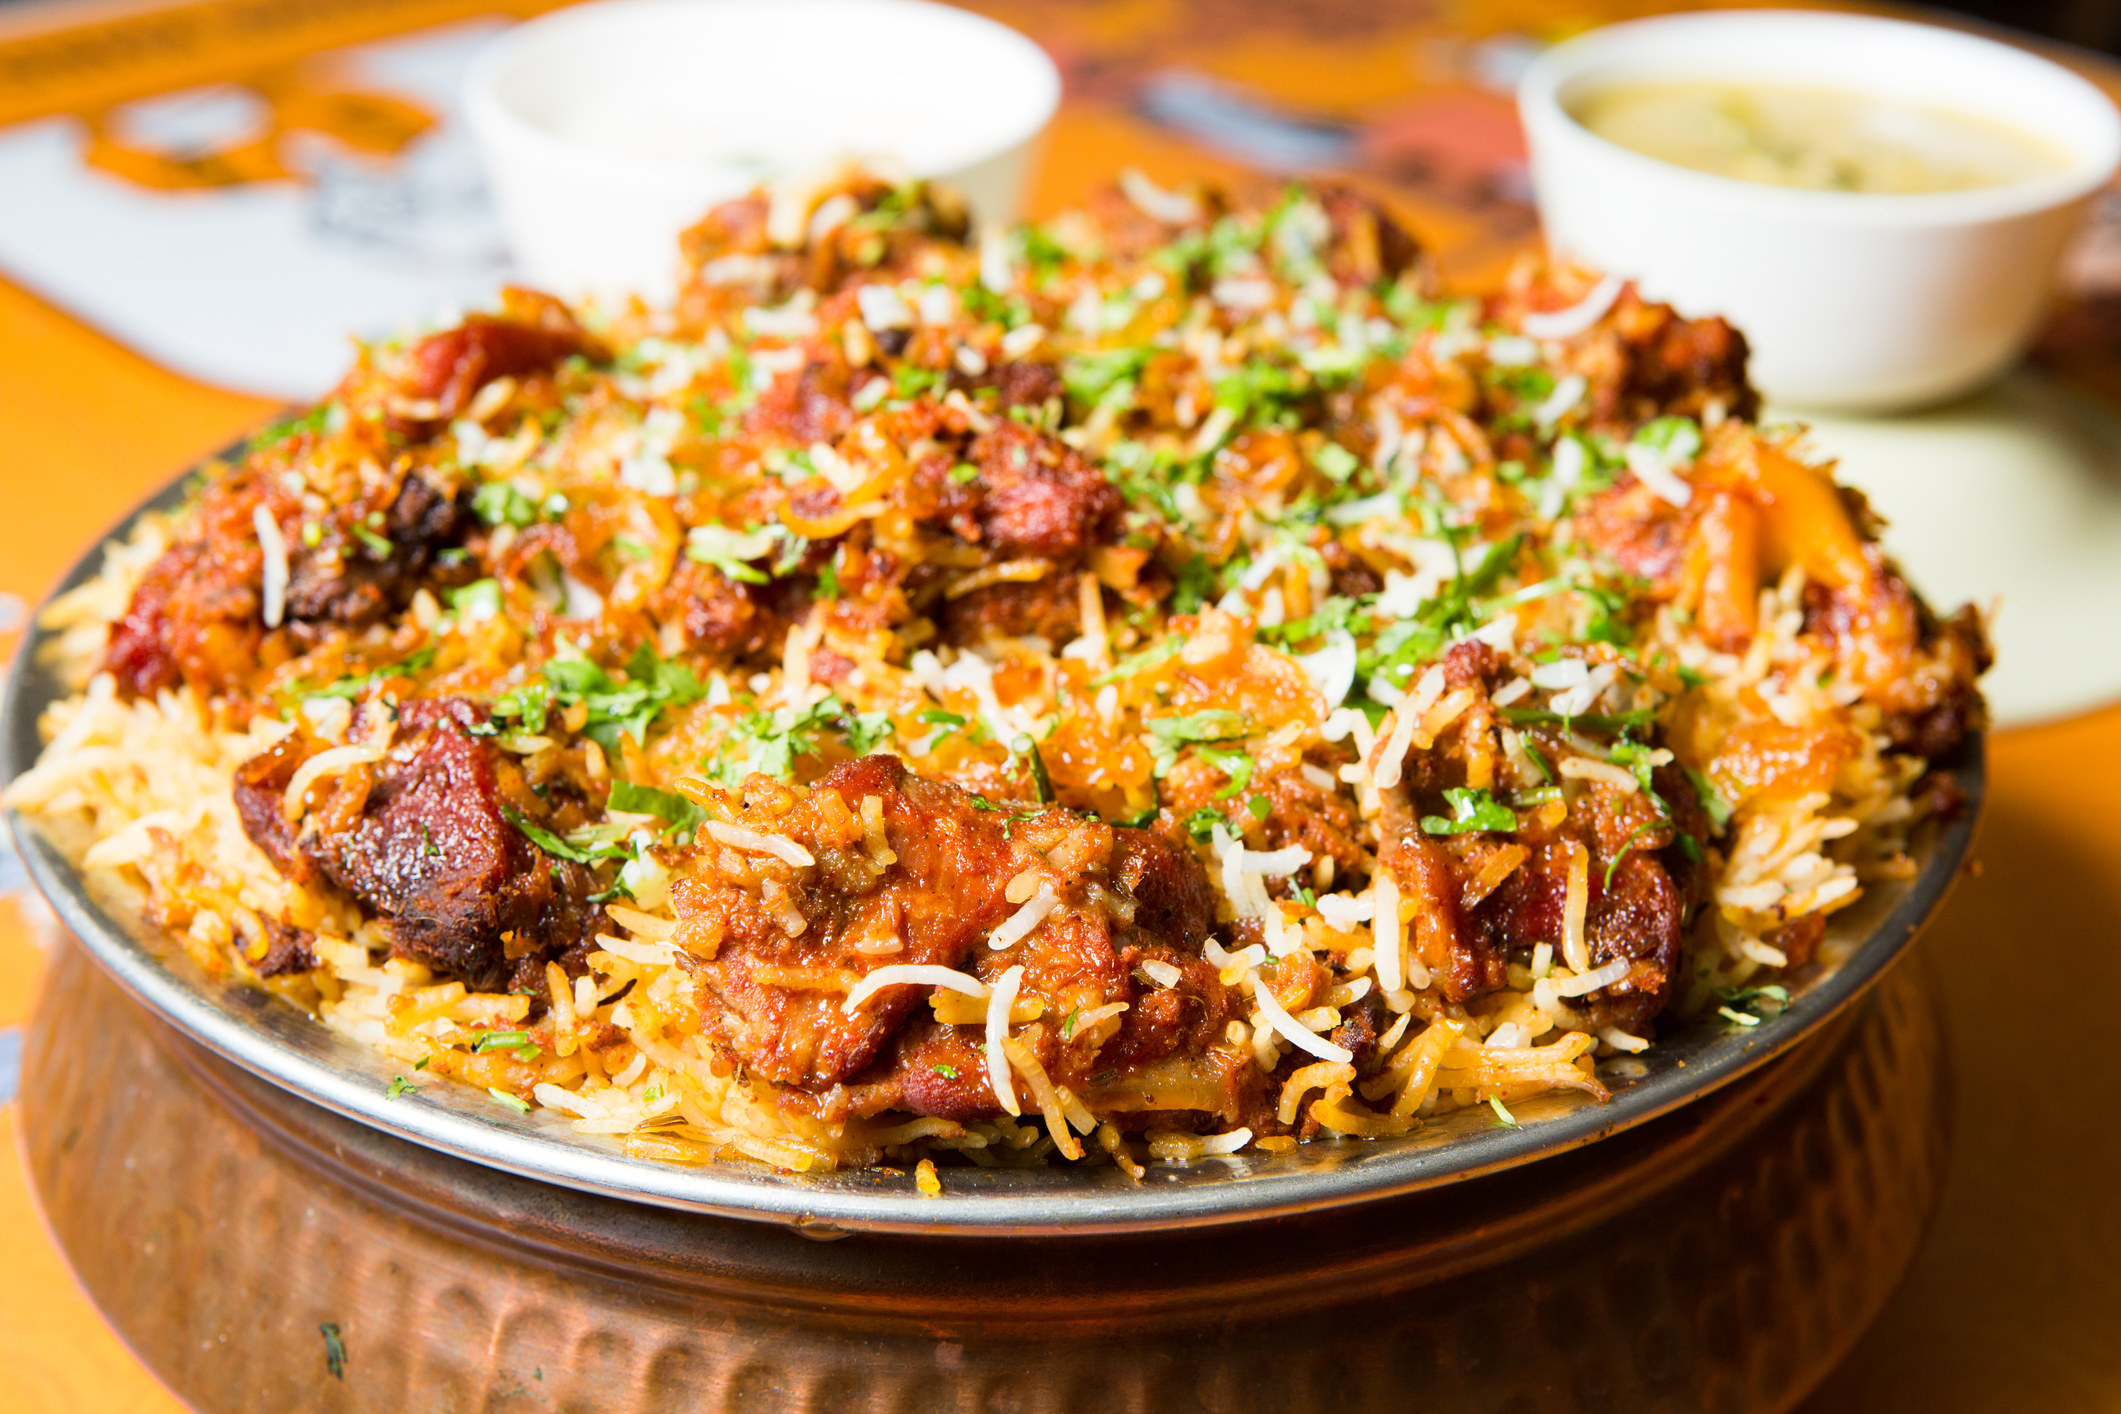 A bowl of Indian biryani with cubed meat.